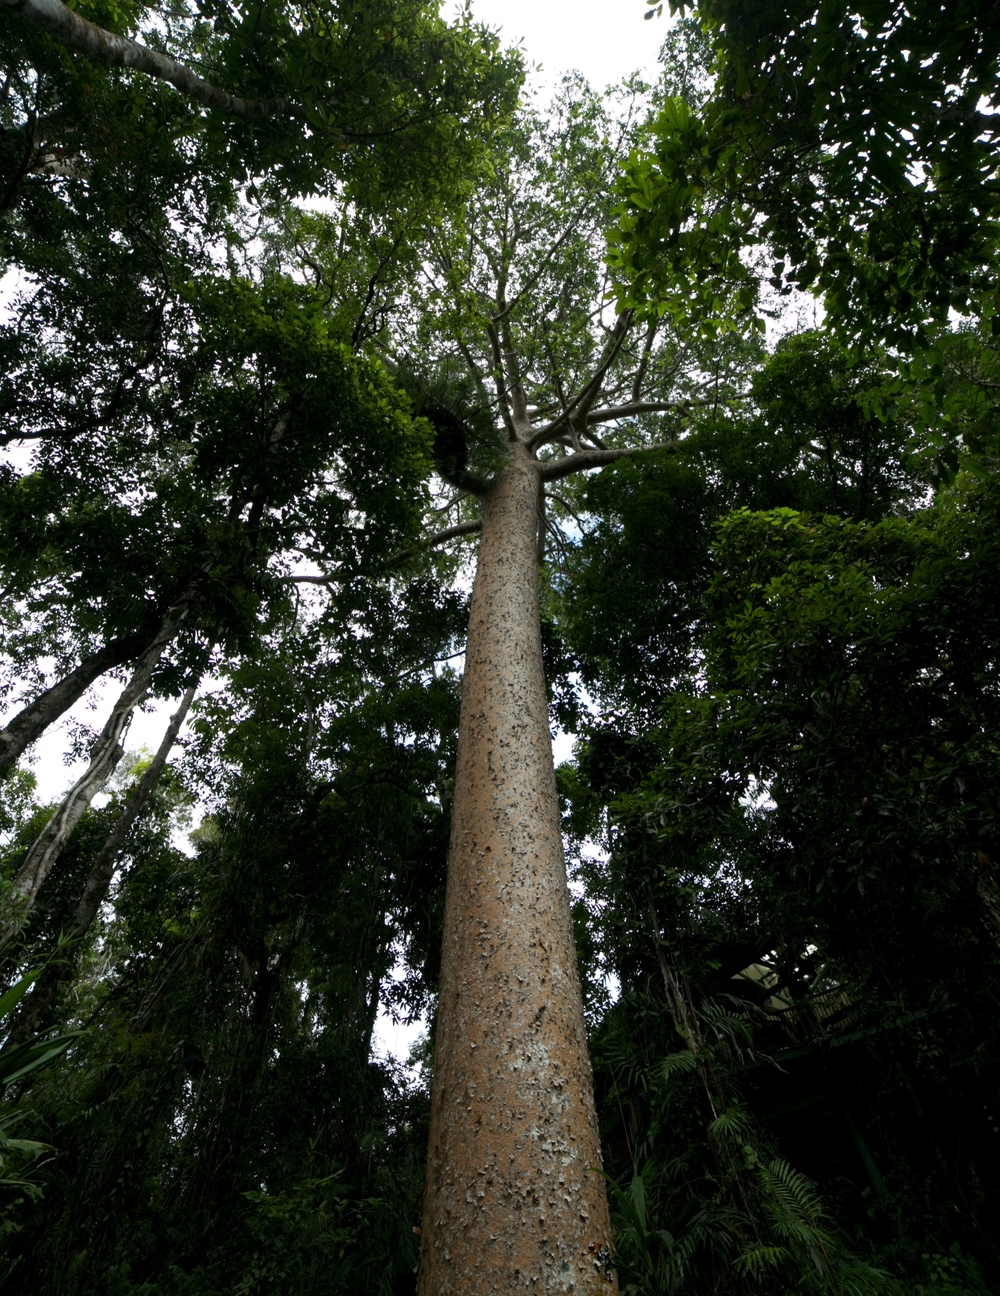 A 400 year old Kauri tree in the Kuranda rainforest, Australia.